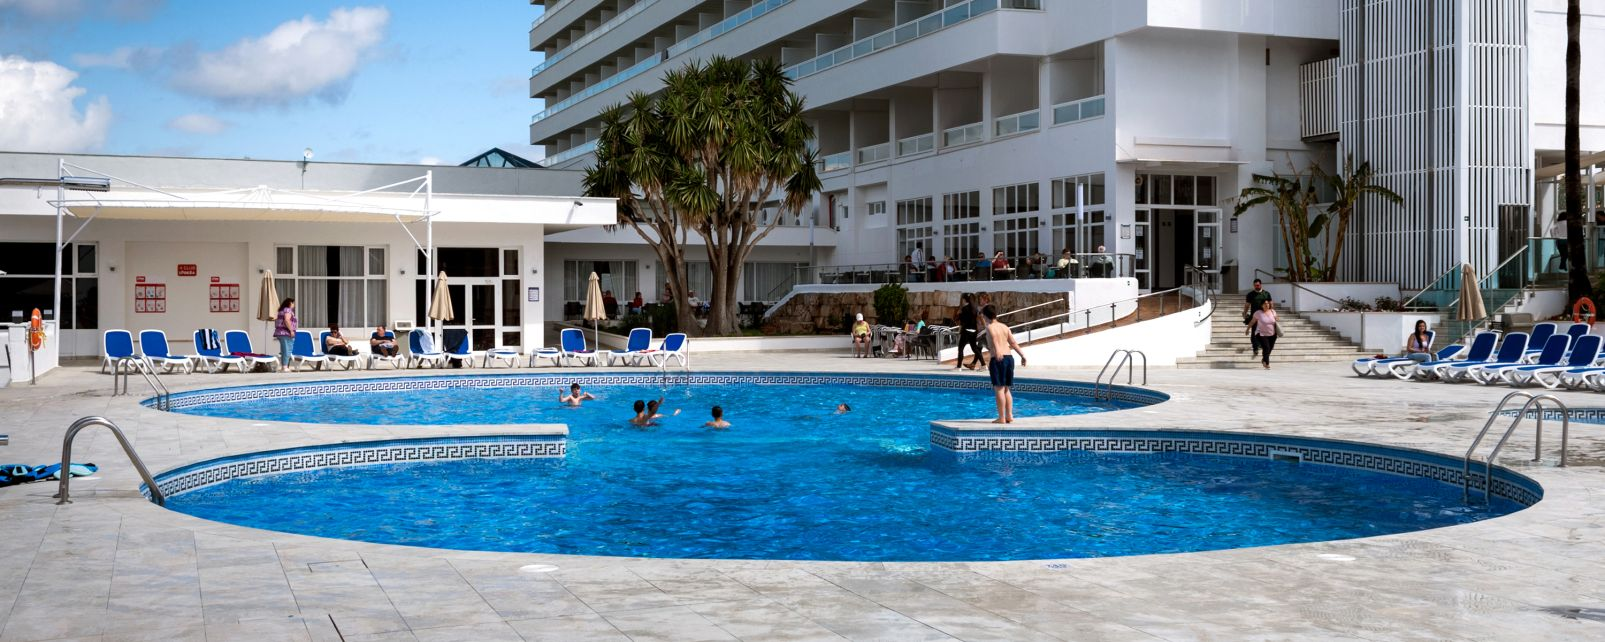 Hotel Samoa Mallorca All Inclusive